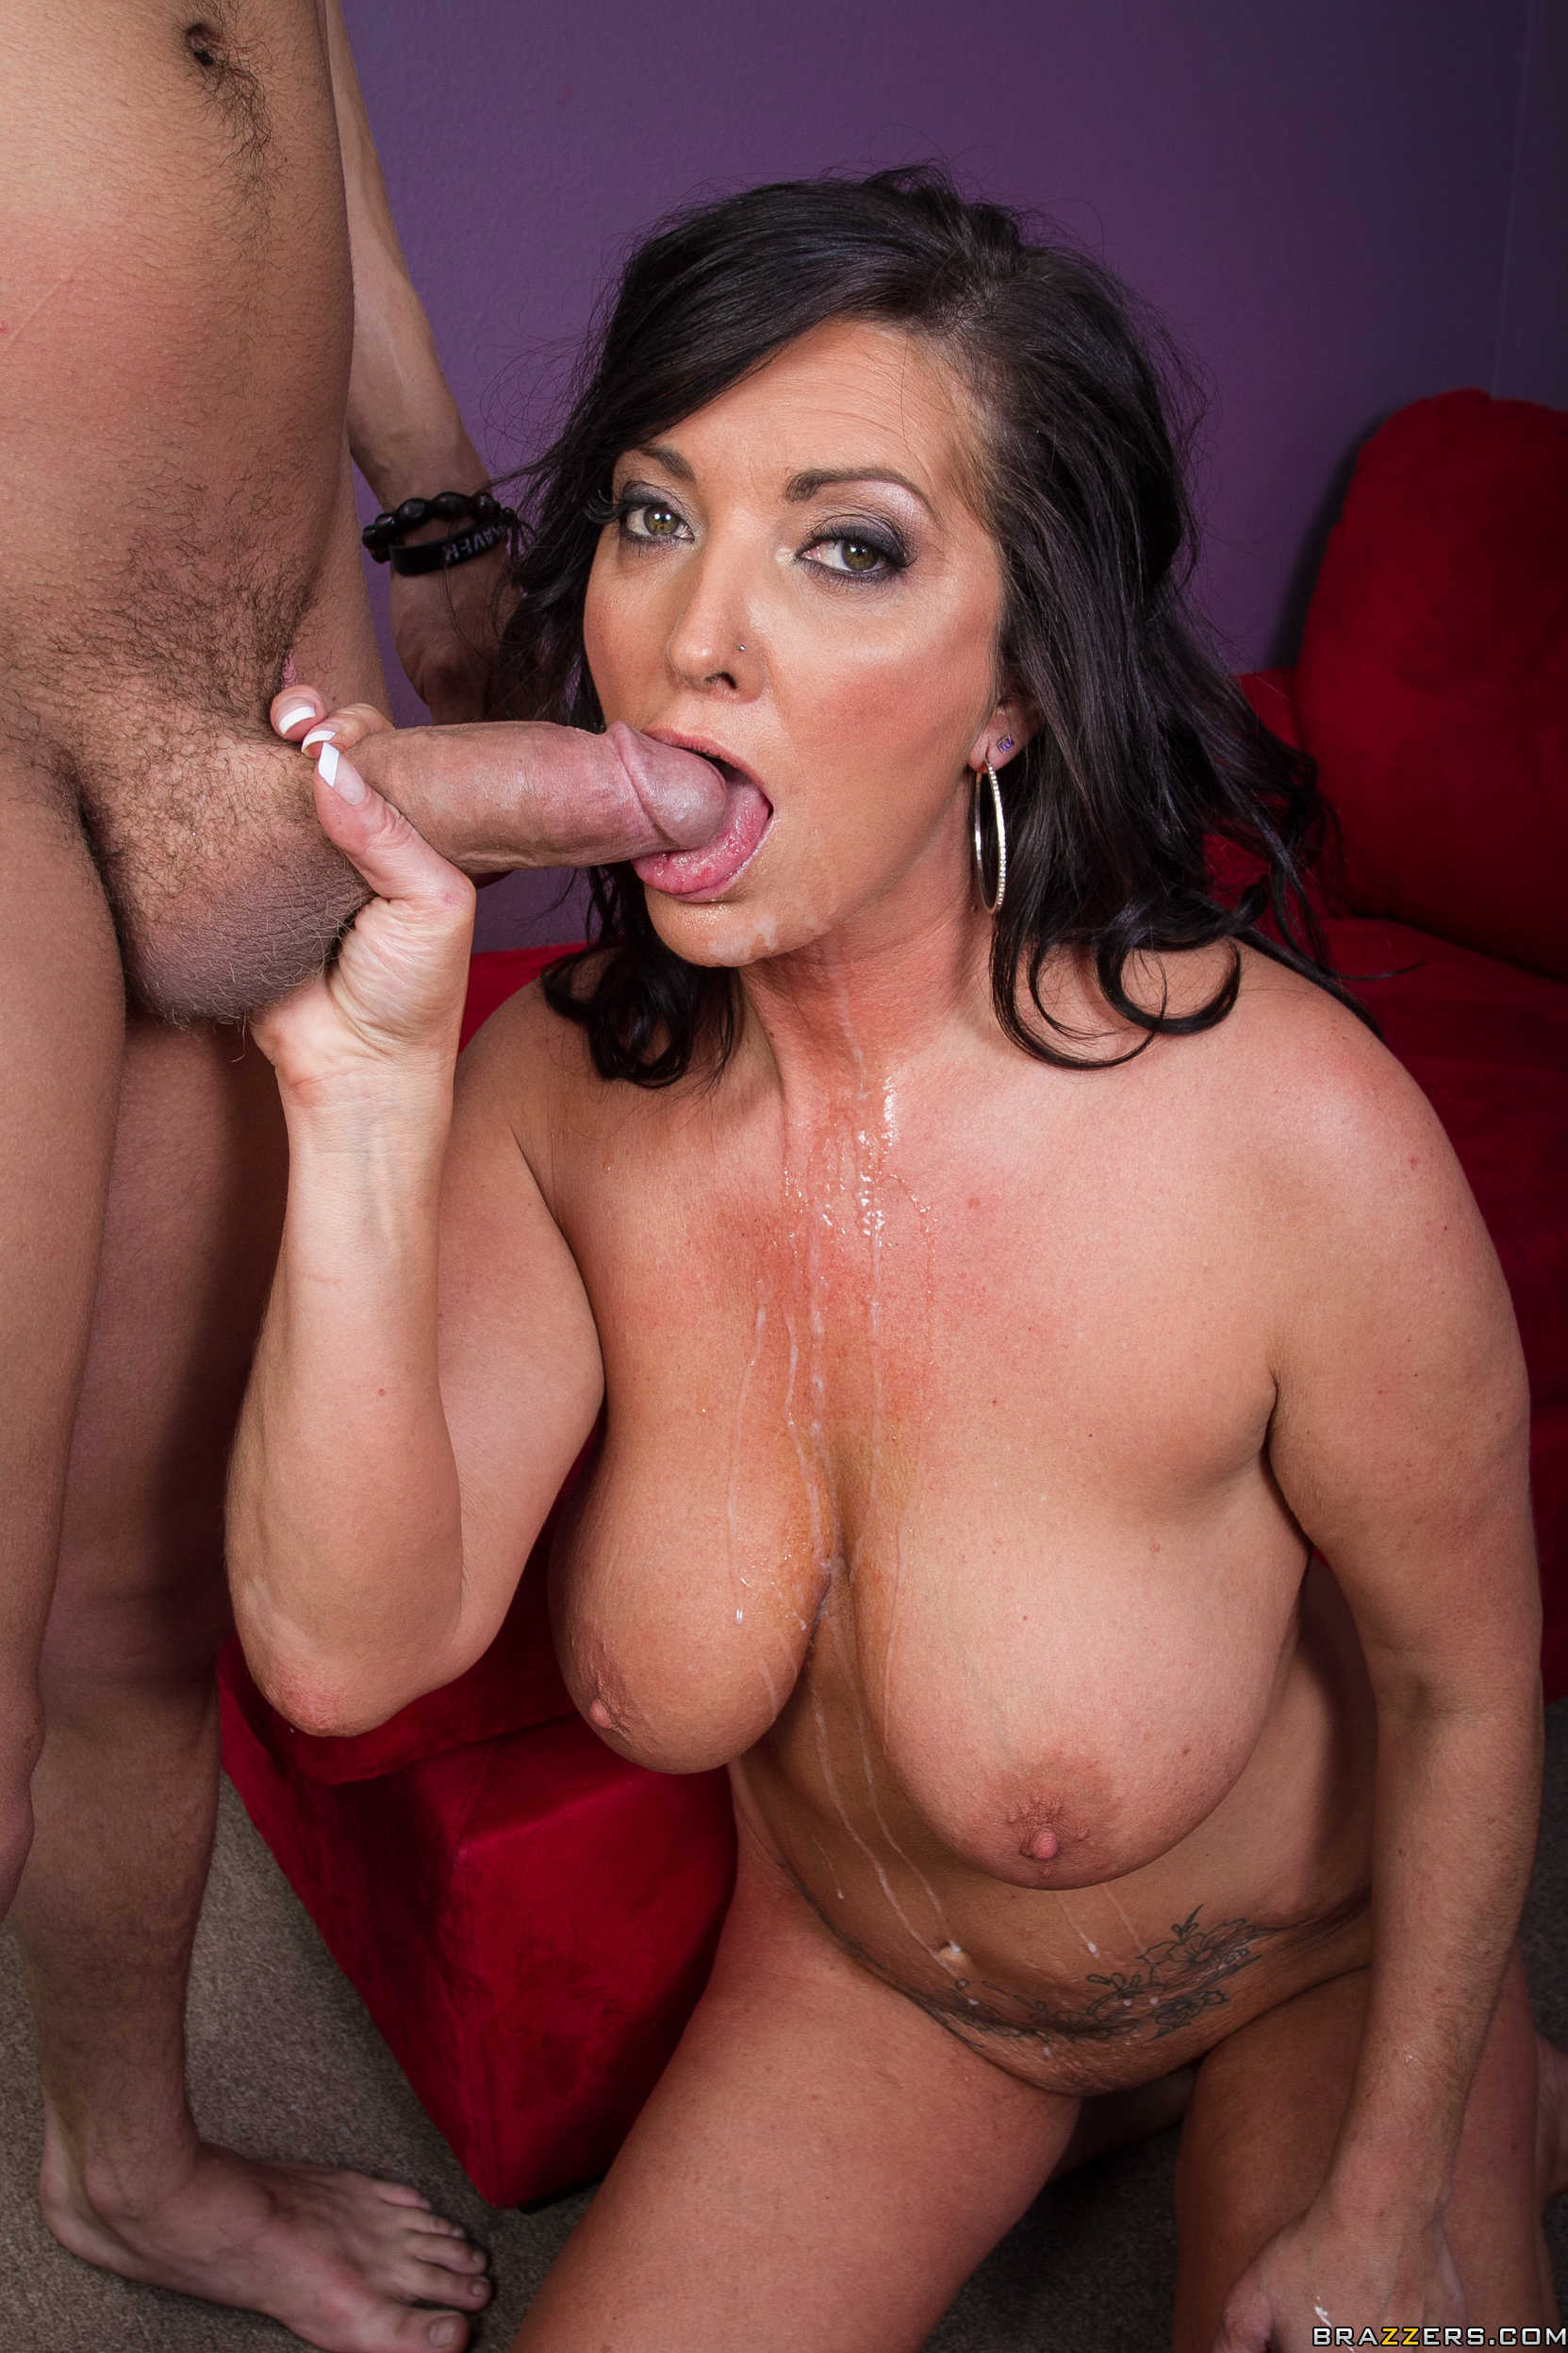 from Sam housewife over housewife over free porn